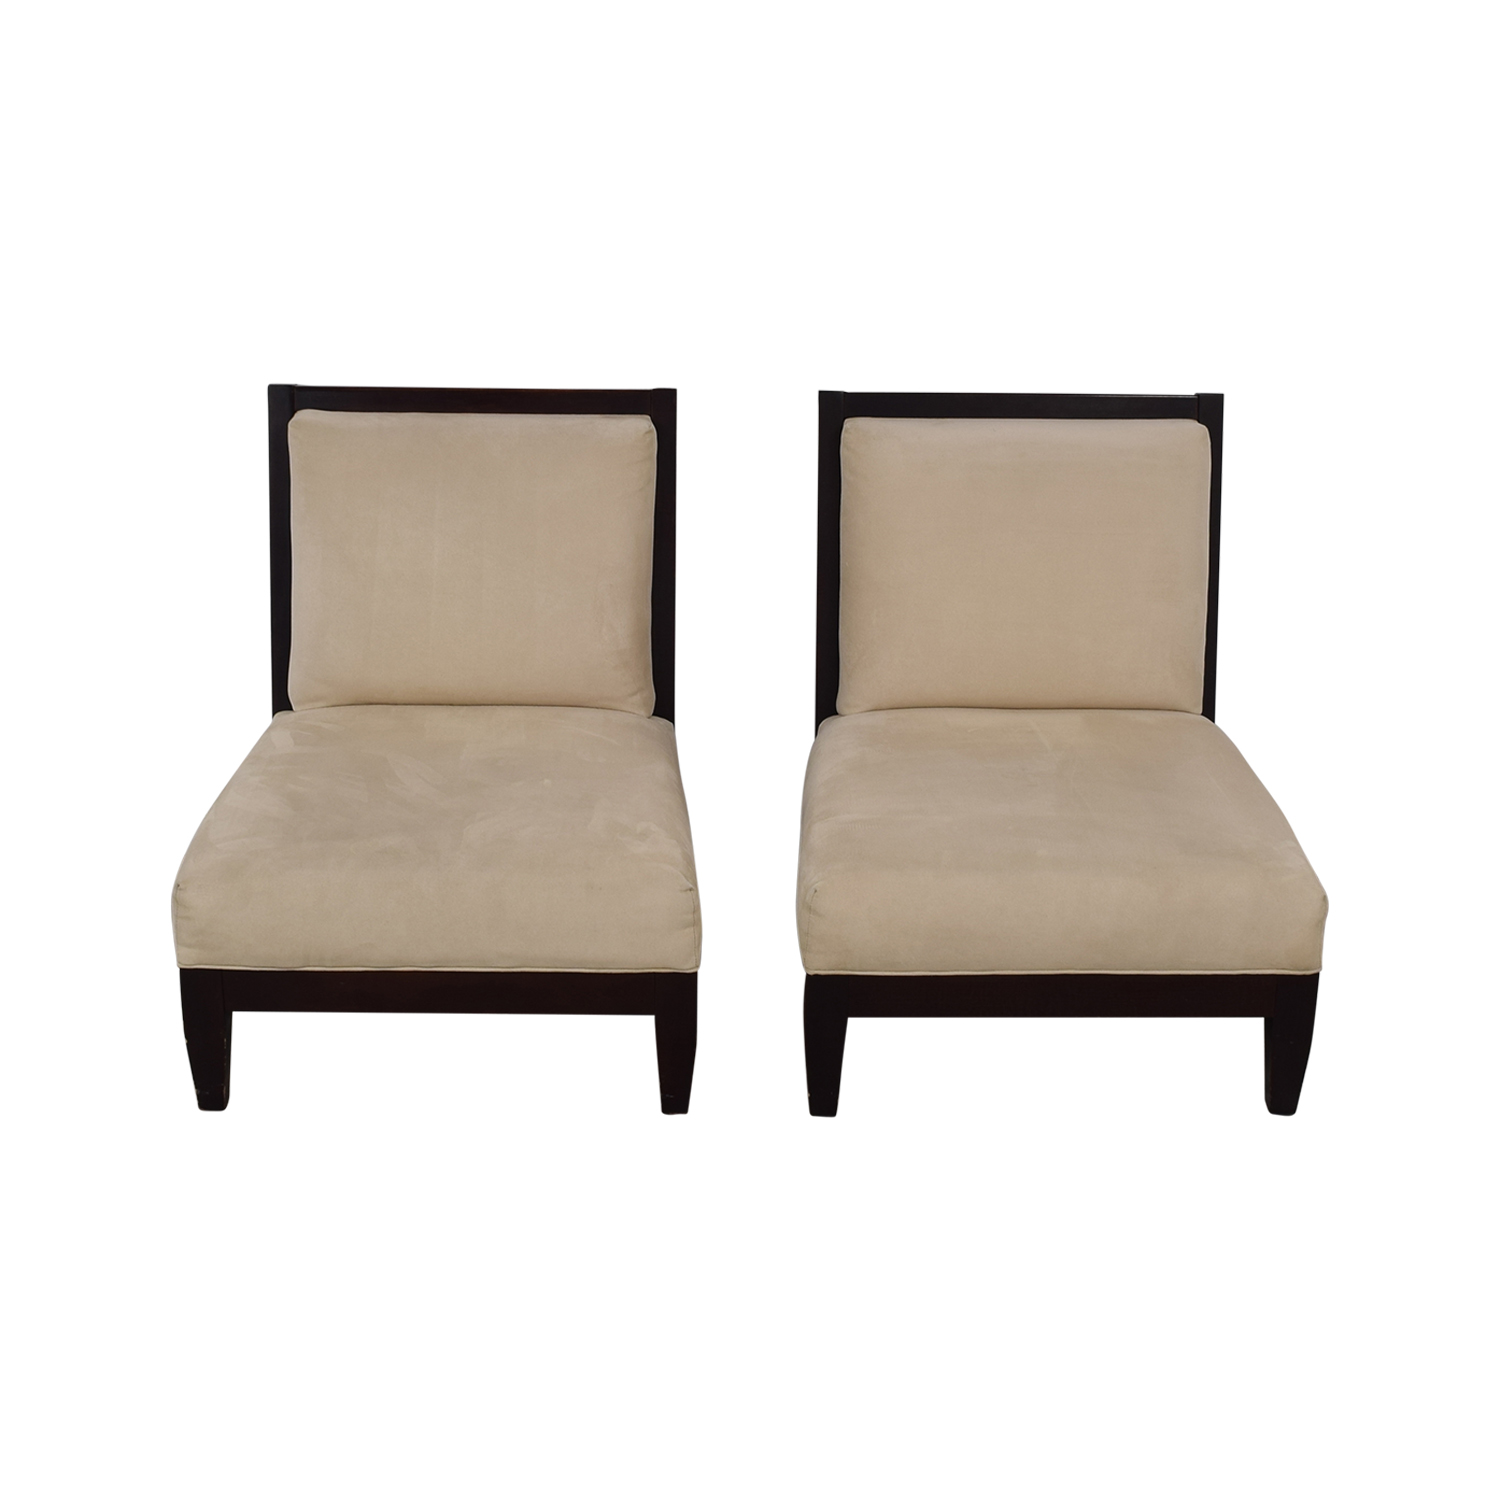 Room & Board Beige and Black Accent Chairs / Accent Chairs